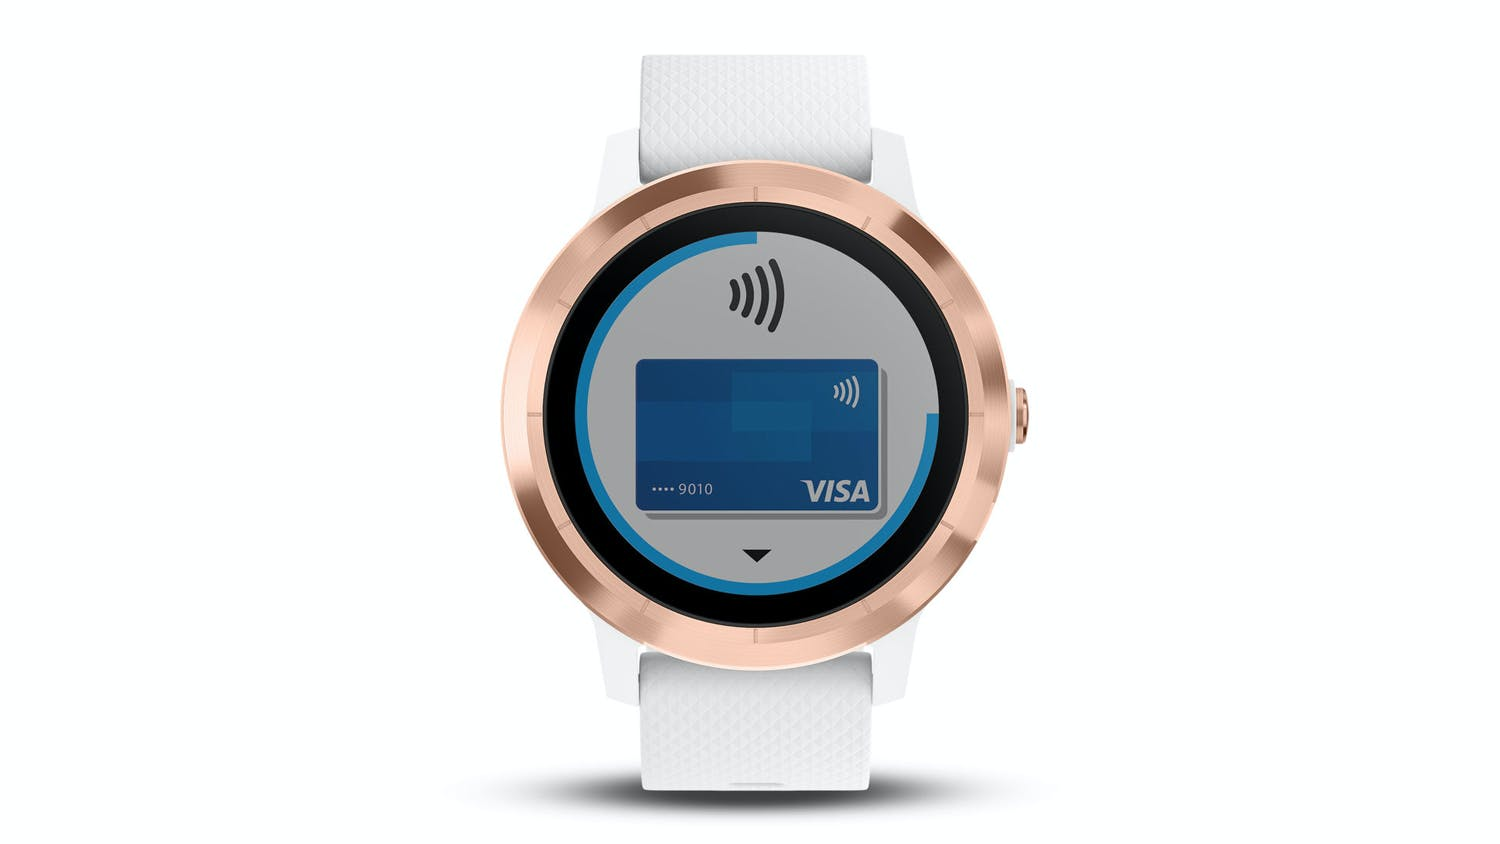 Garmin vivoactive 3 Smartwatch - White Silicone/Rose Gold